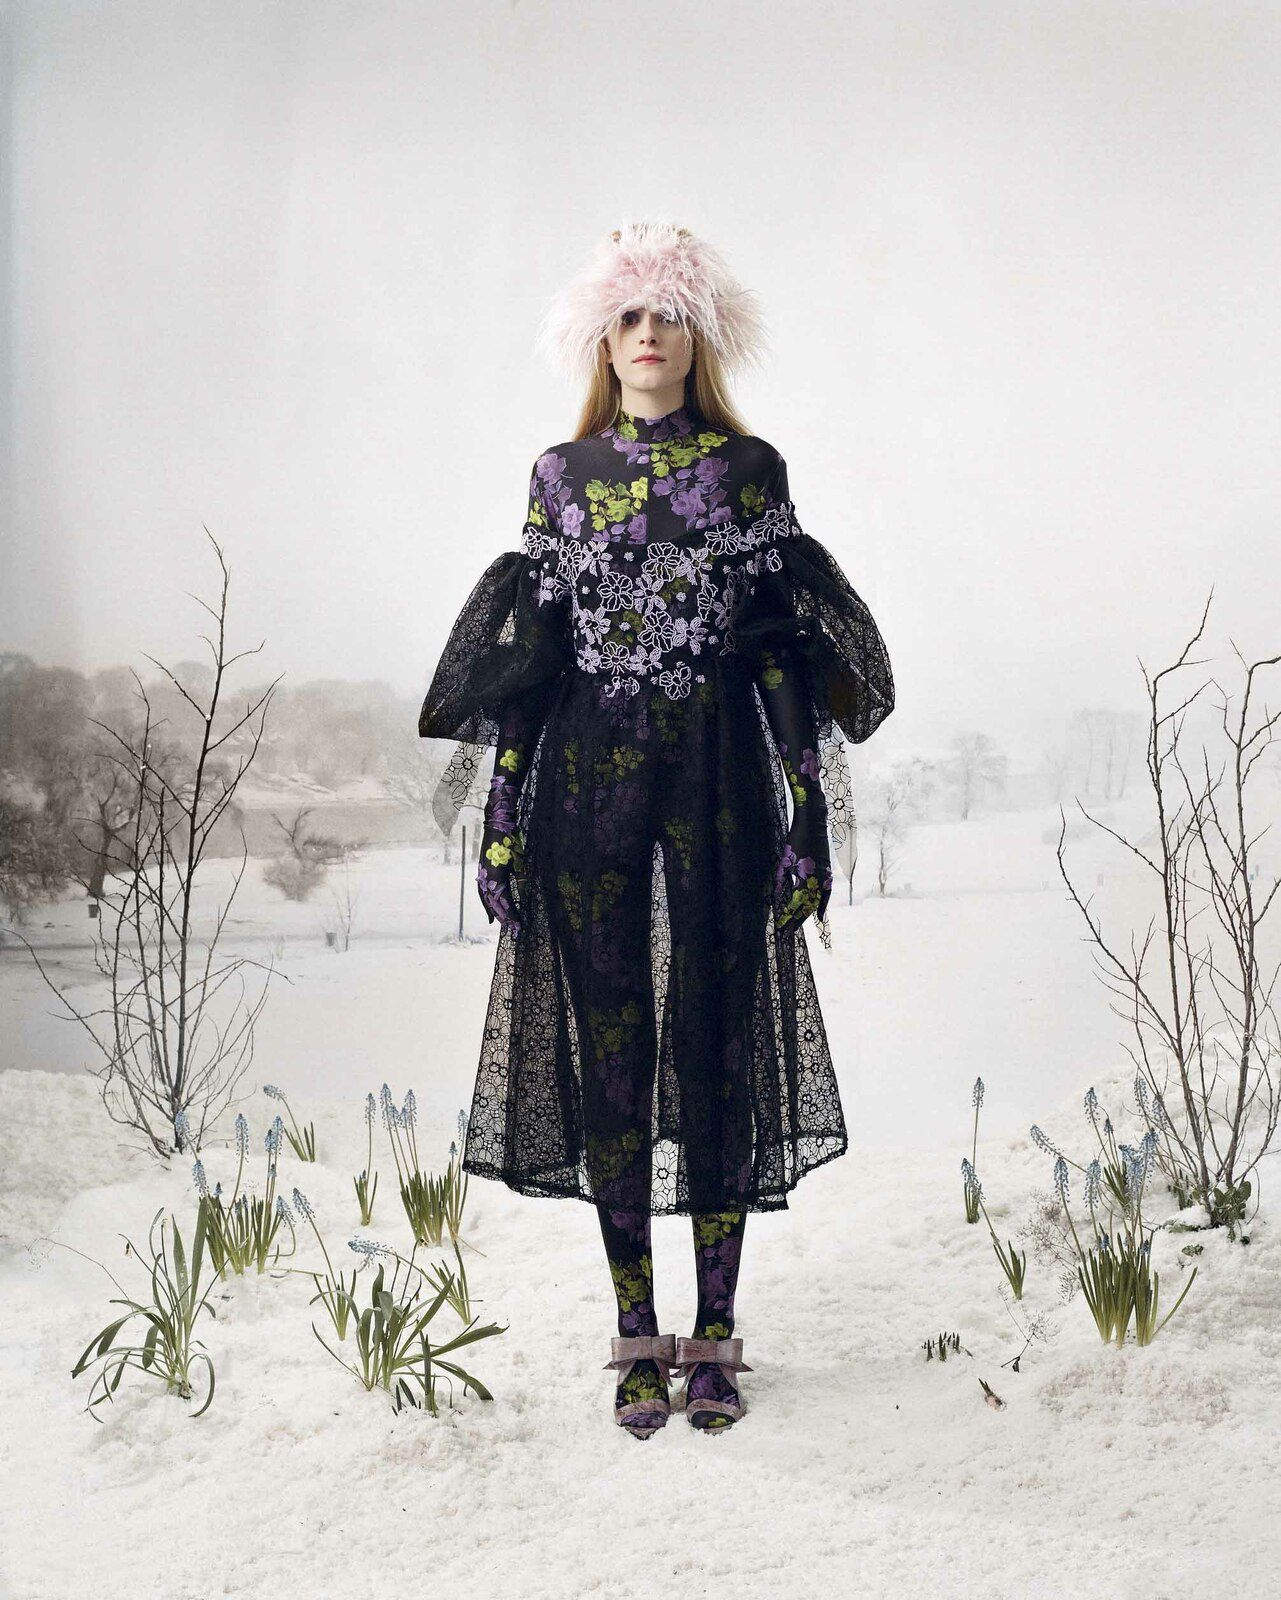 FLORENTINA LEITNER FALL/WINTER 2021-2022 COLLECTION